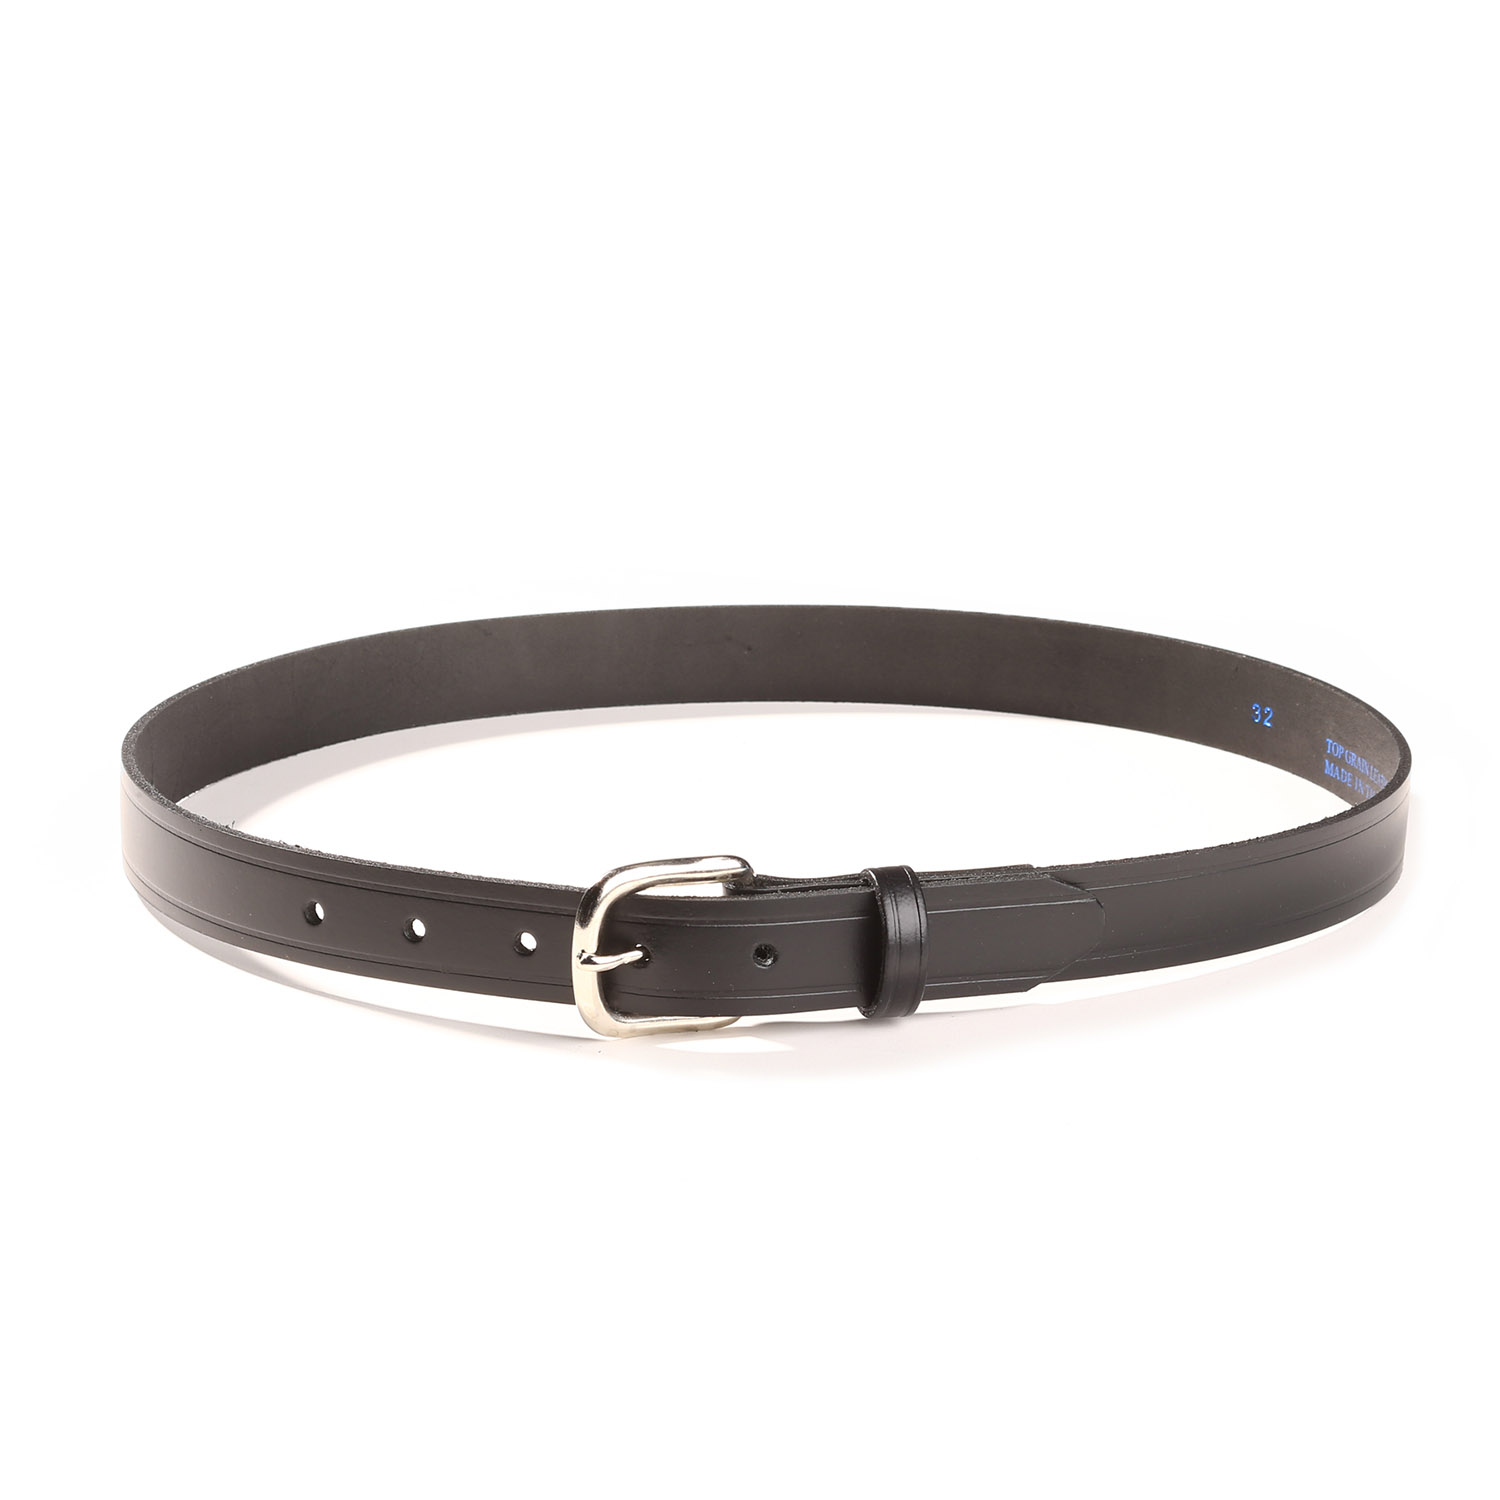 Black. Multi. Brand. Unique Bargains. Buckle Down. See more brands See more prices. Women's Wide Belts. invalid category id. Women's Wide Belts. Showing 3 of 3 results that match your query. Search Product Result. Product - 9cm Wide Nylon String Woven Braided Waist Belt Band for Lady Material: Faux Leather,Nylon, Metallic; Package.